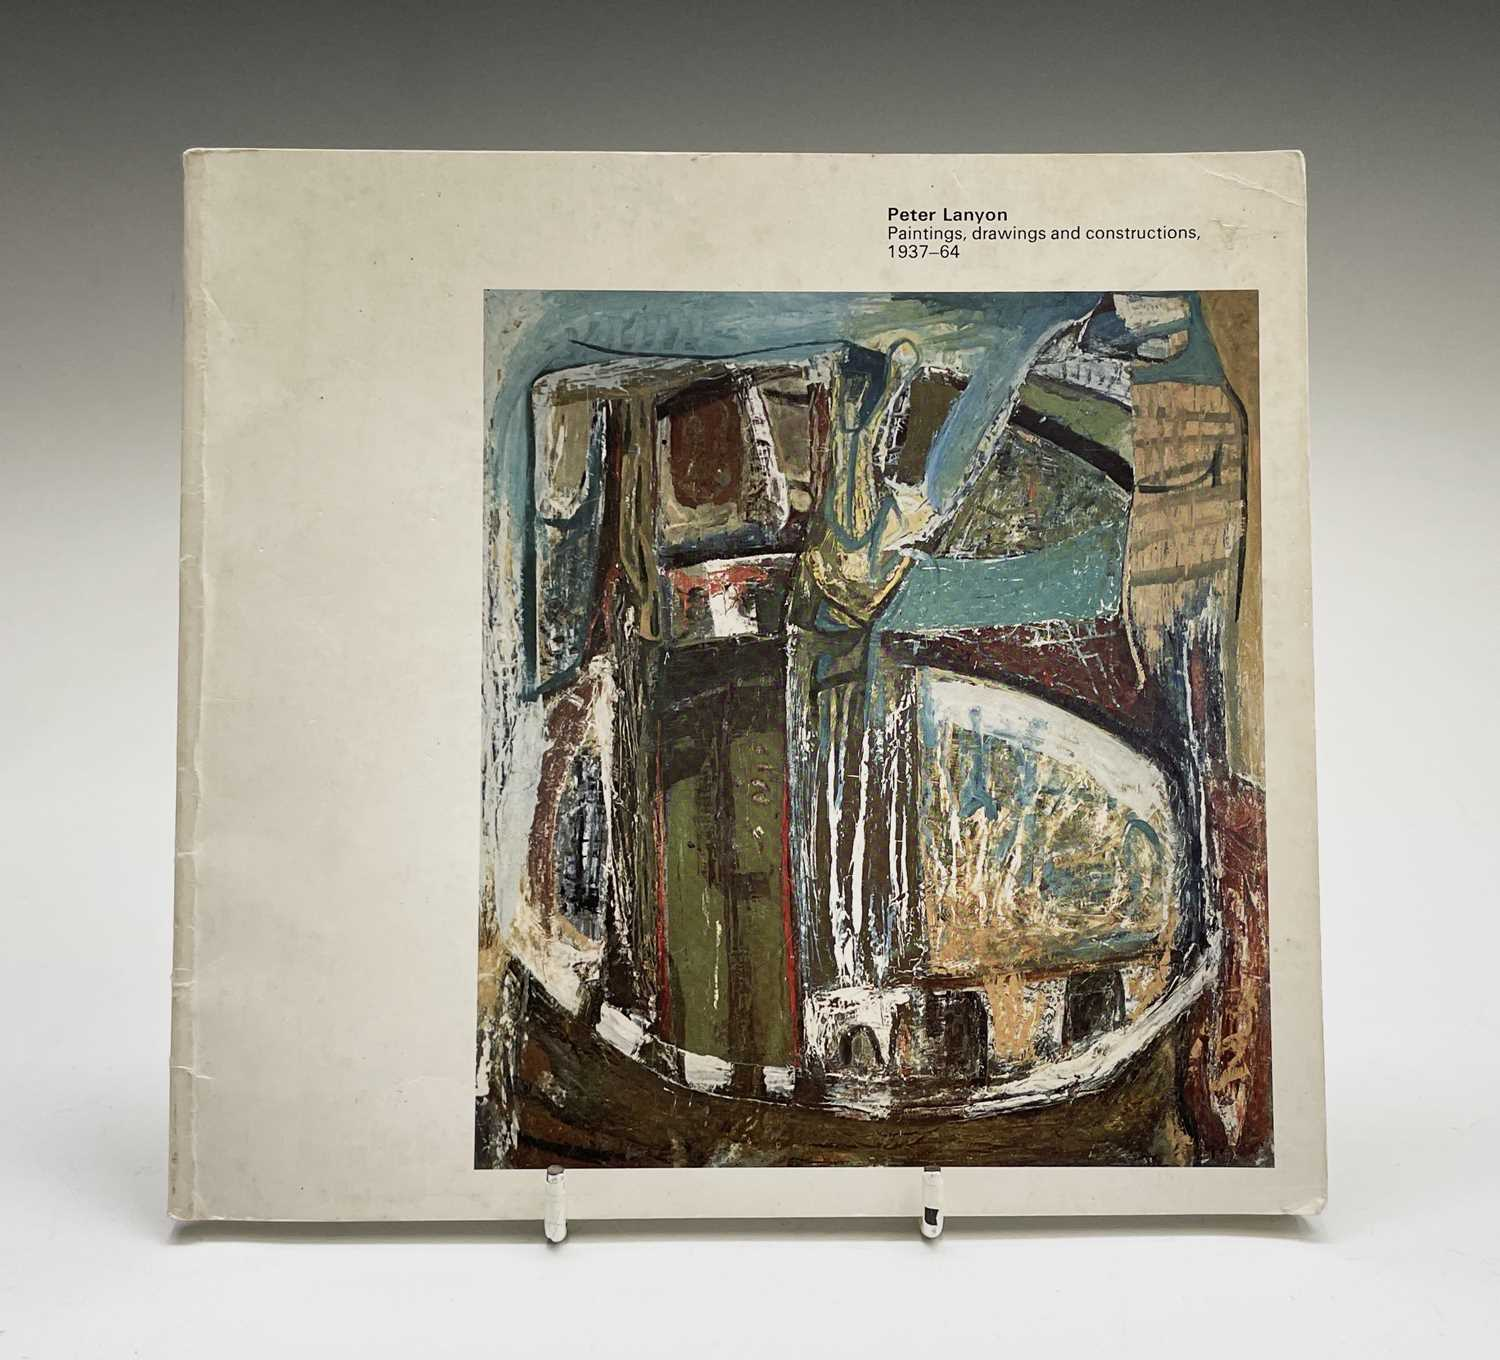 'Peter Lanyon: Paintings, drawings and constructions, 1937-64' catalogue, together with a Tate - Image 3 of 3